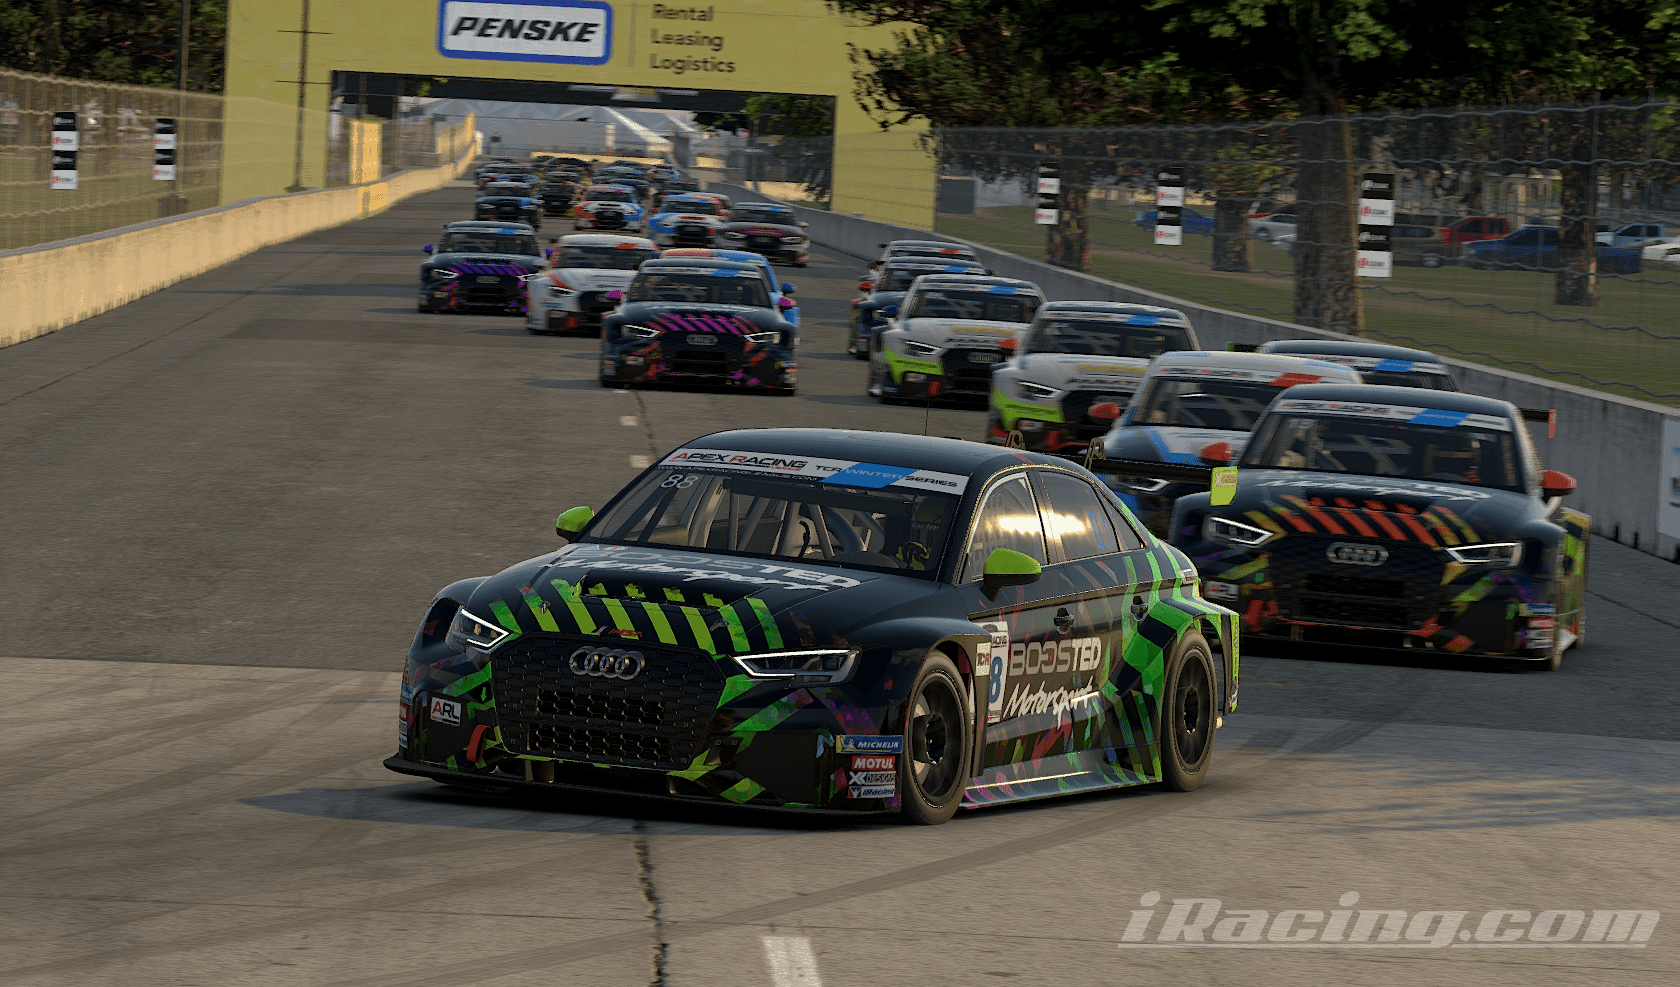 ARL – TCR Winter Series 2019/20 R13 Belle Isle